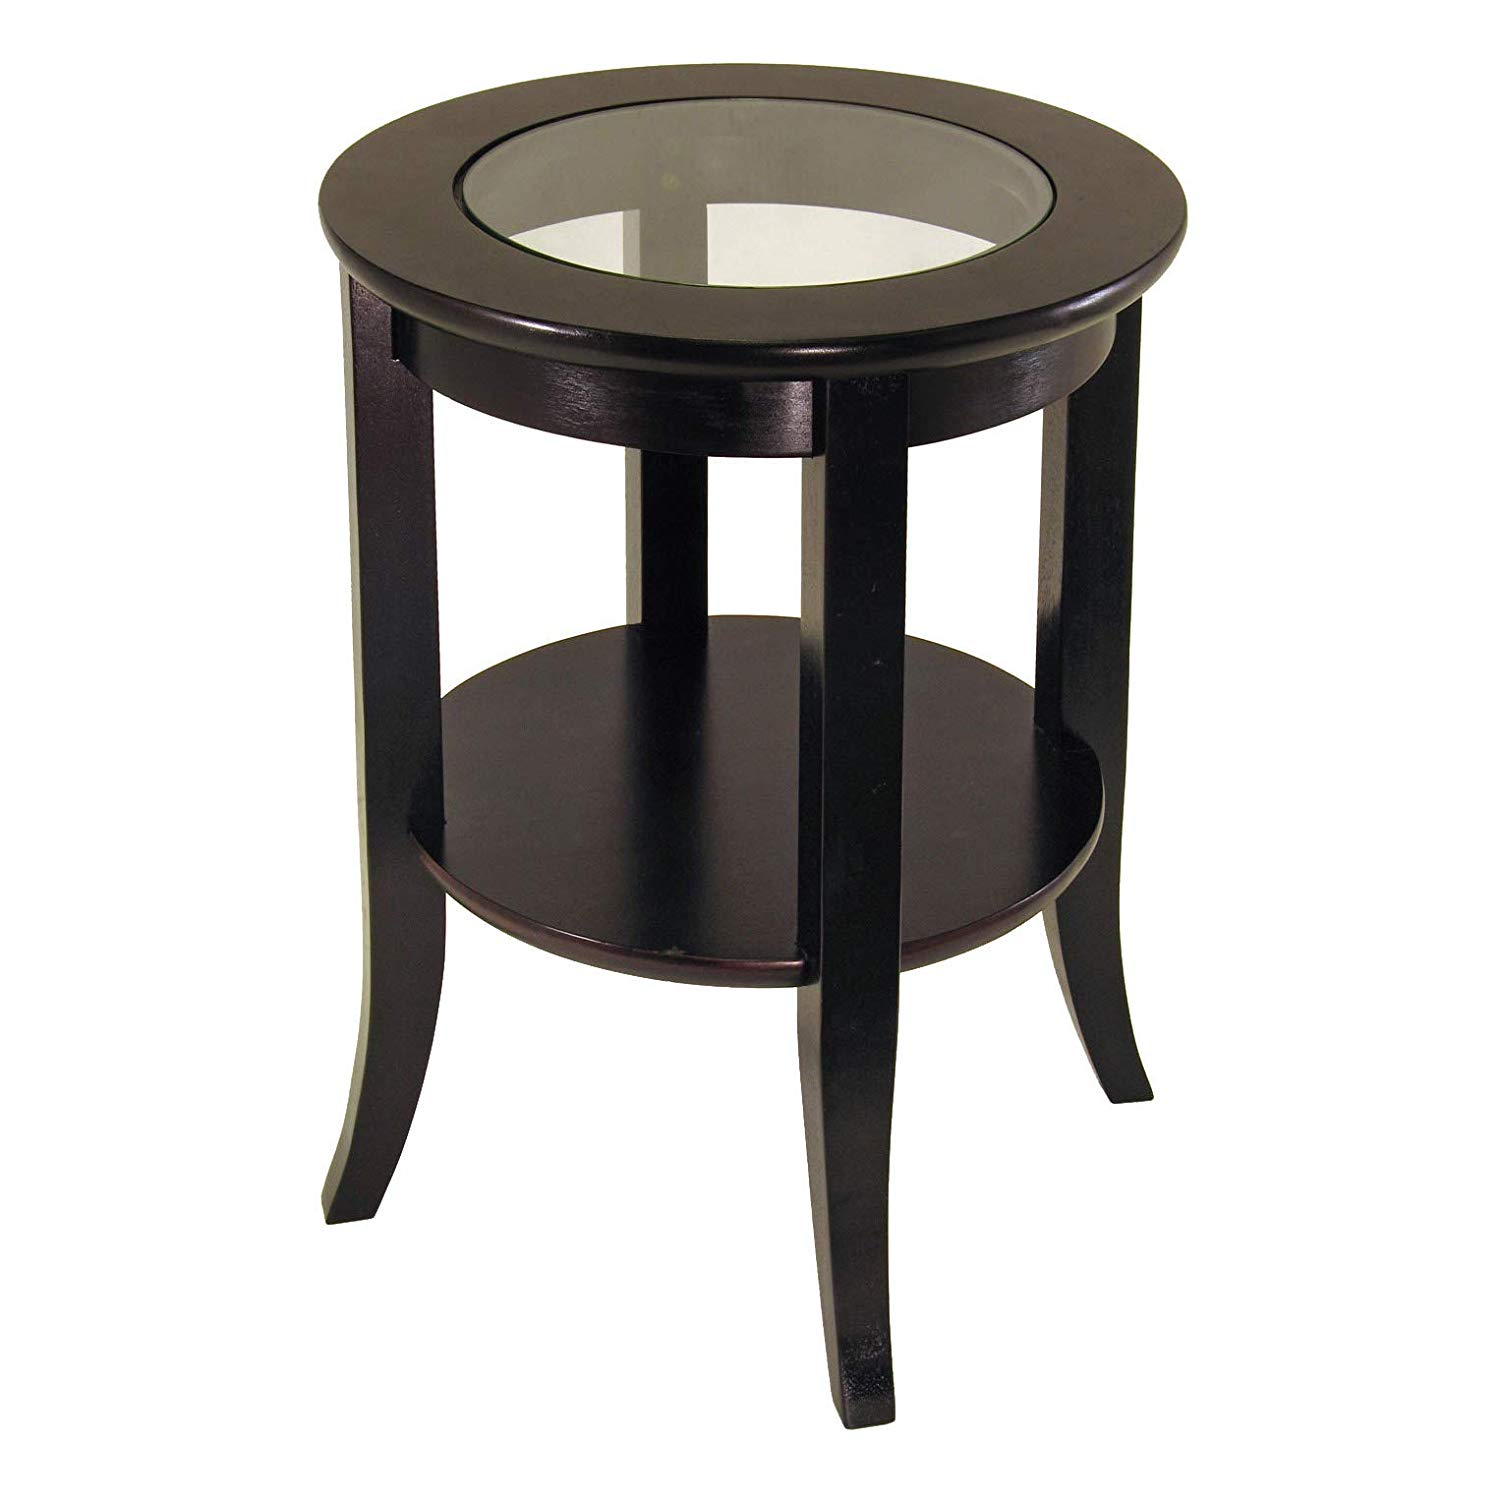 winsome wood genoa occasional table espresso round end kitchen dining decorating ideas for family rooms with leather furniture ethan allen dubai whole patio big lots chairs coffee